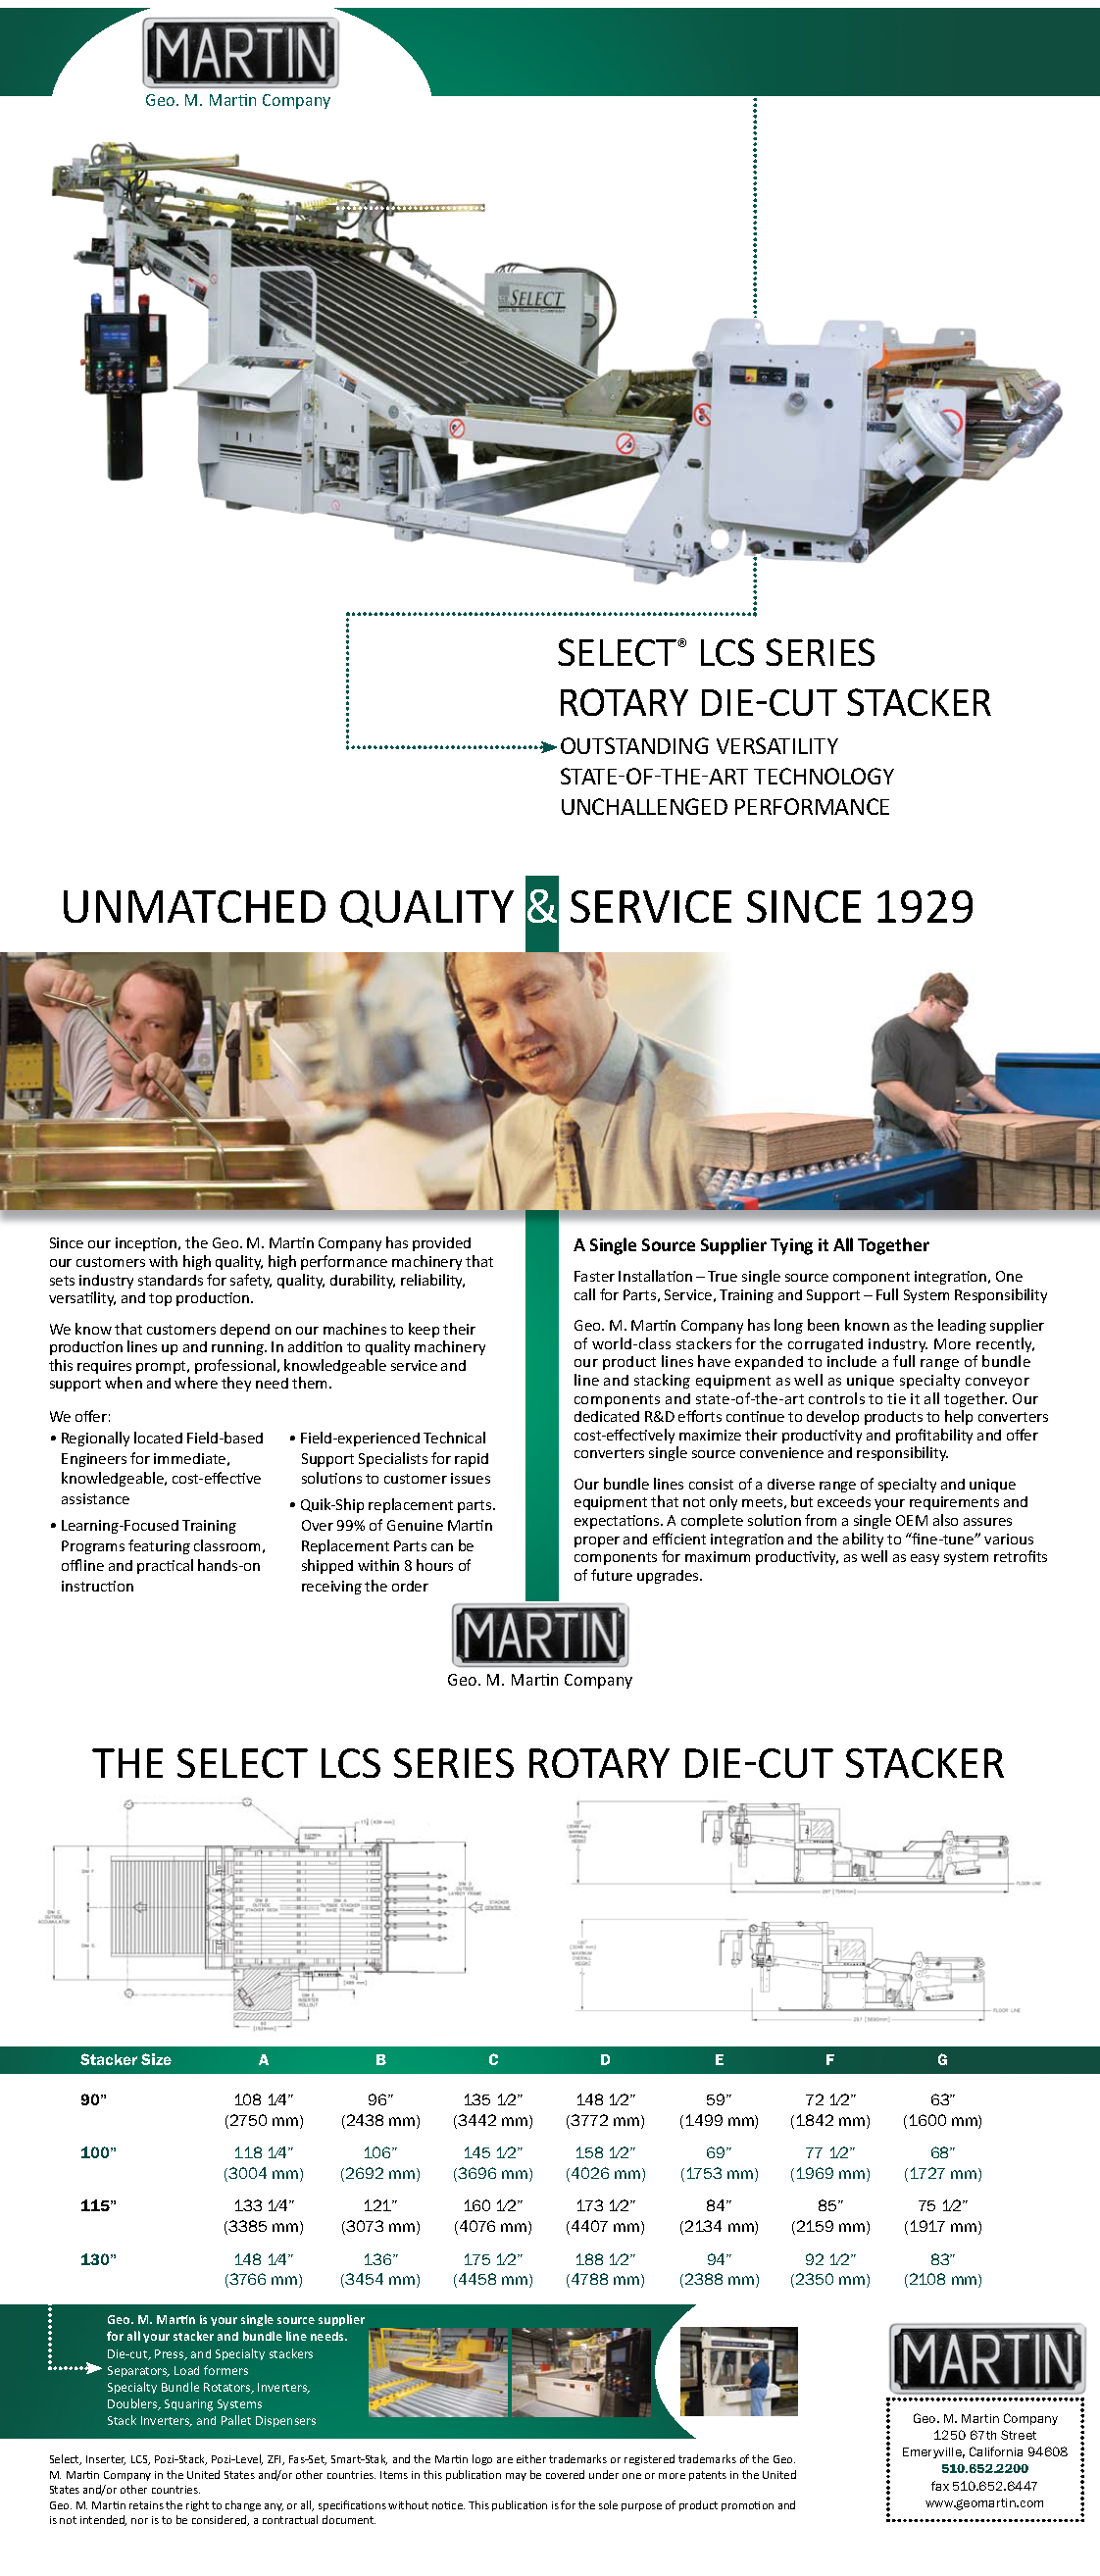 Learn more about the Select LCS Rotary Die Cutter Stacker in the Geo. M. Martin brochure!